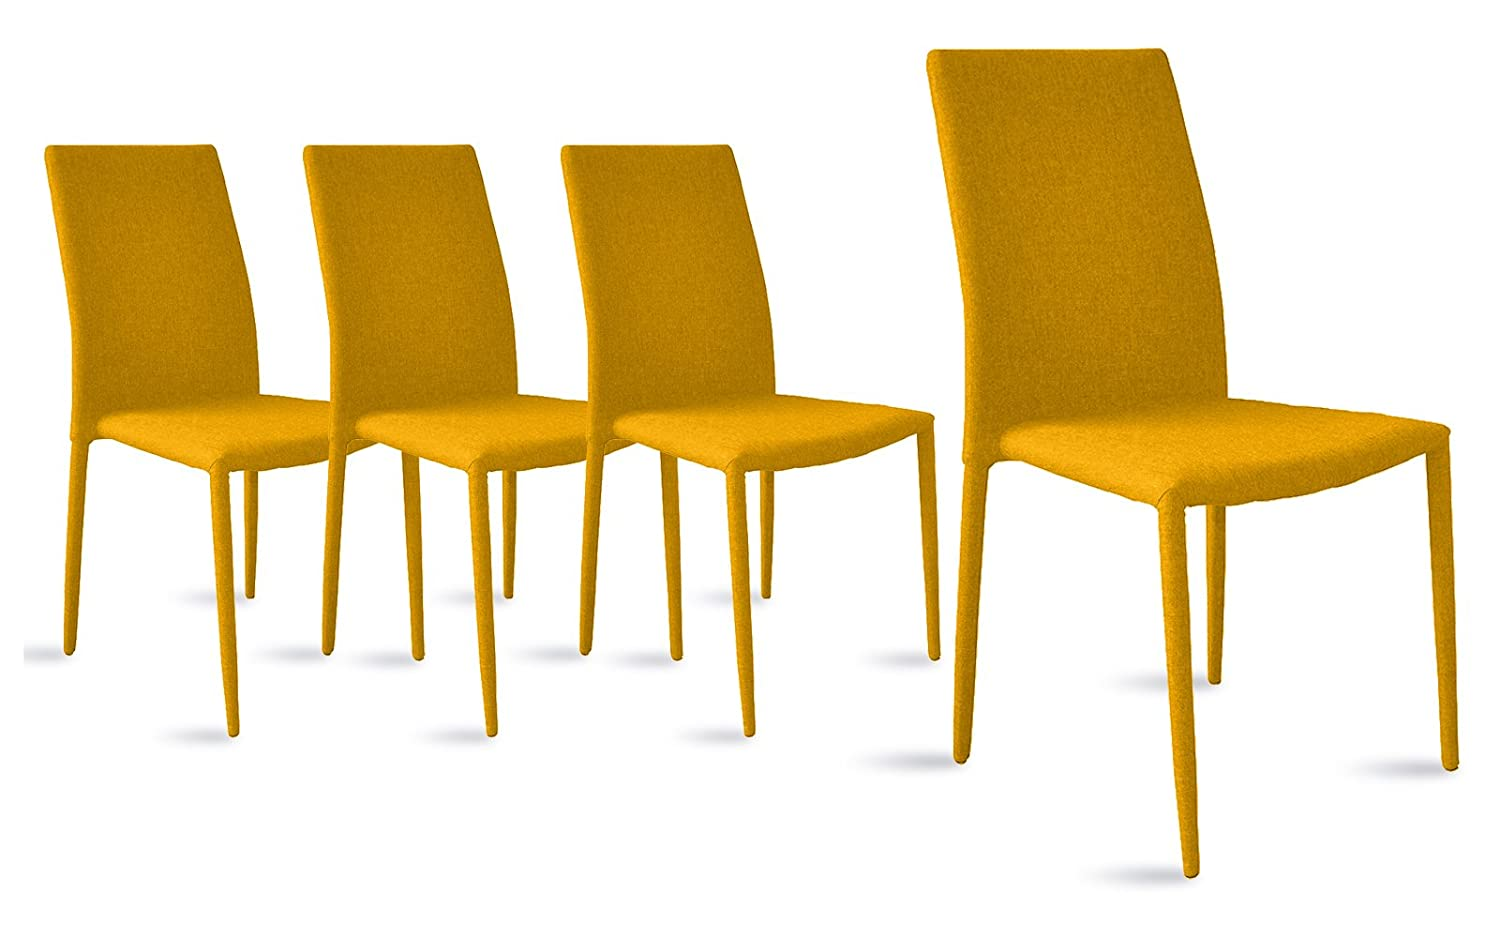 Dining Room Chairs Set of 4, Fabric Chair for Living Room 4 Pieces Yellow